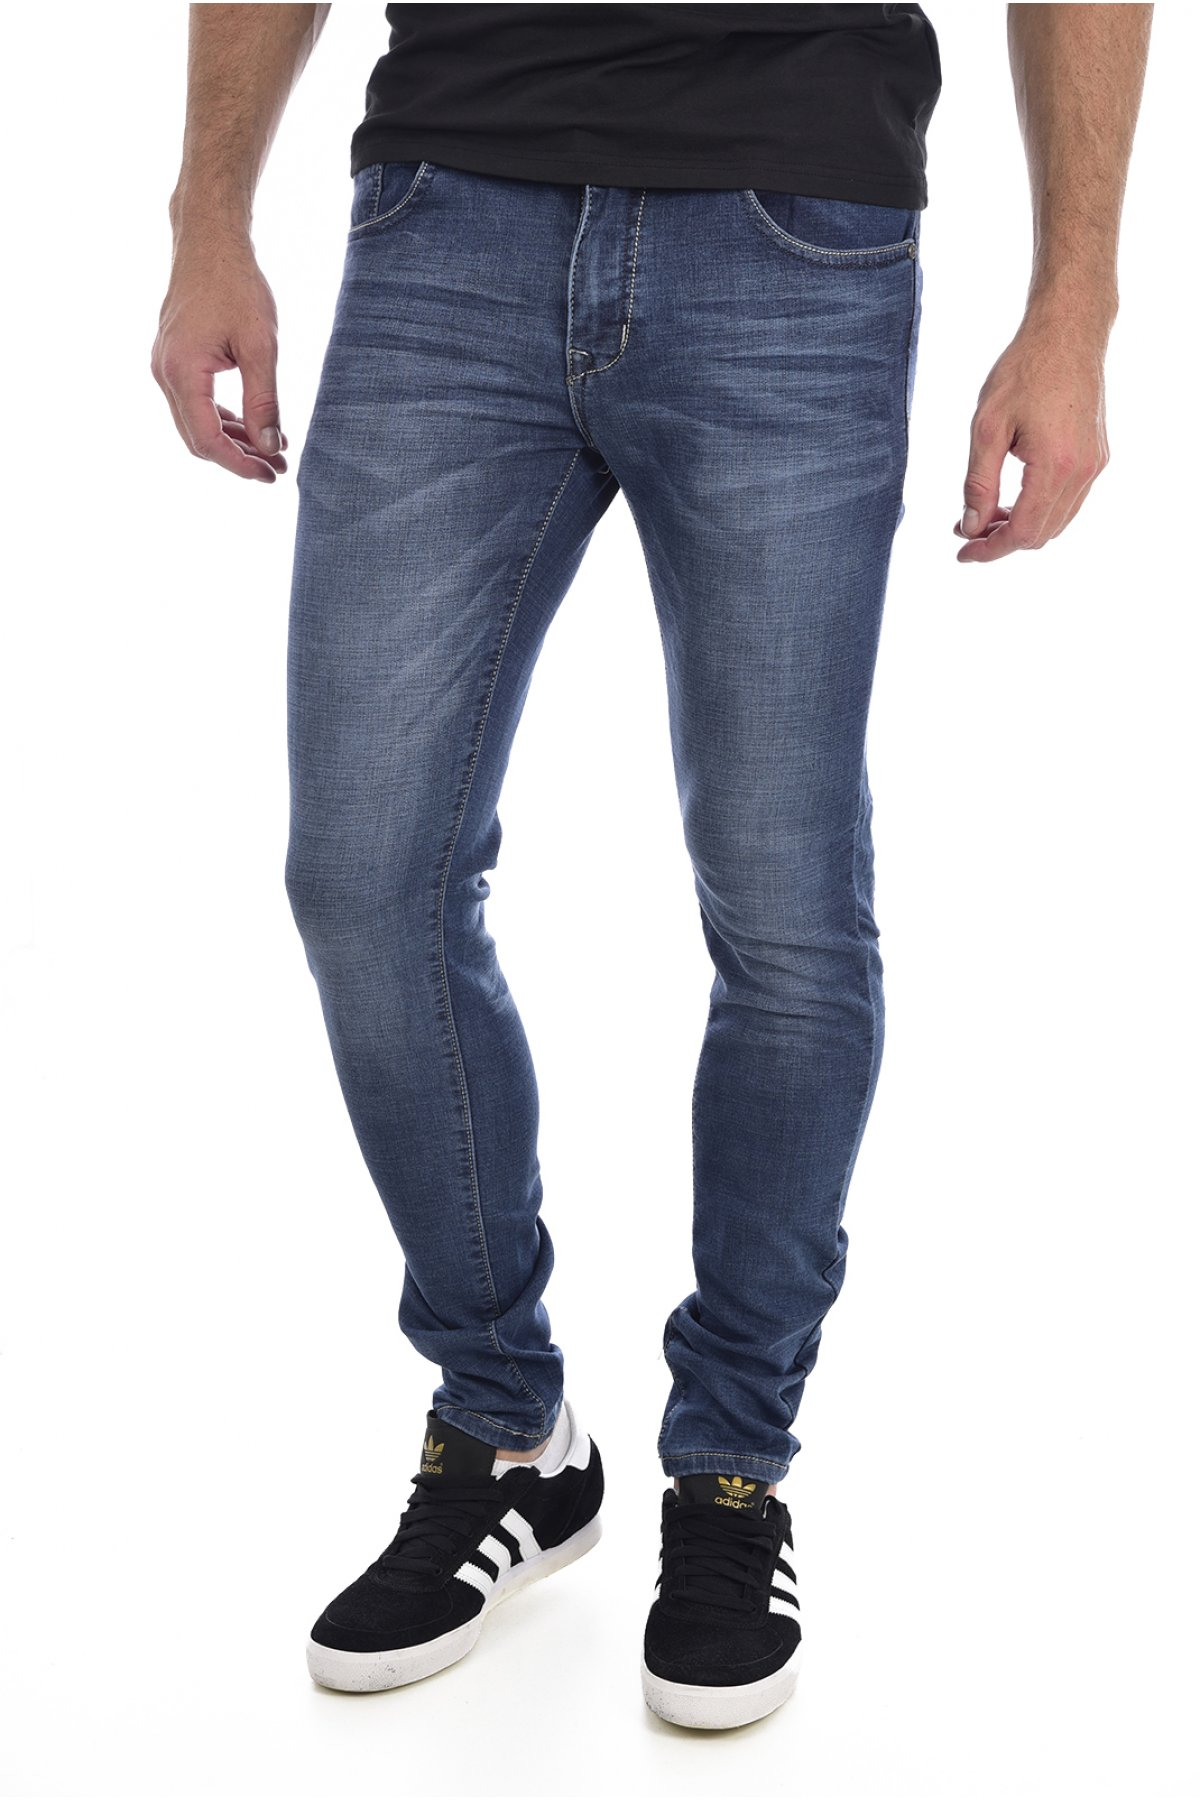 Jean Slim Stretch 5140 - Leo Gutti